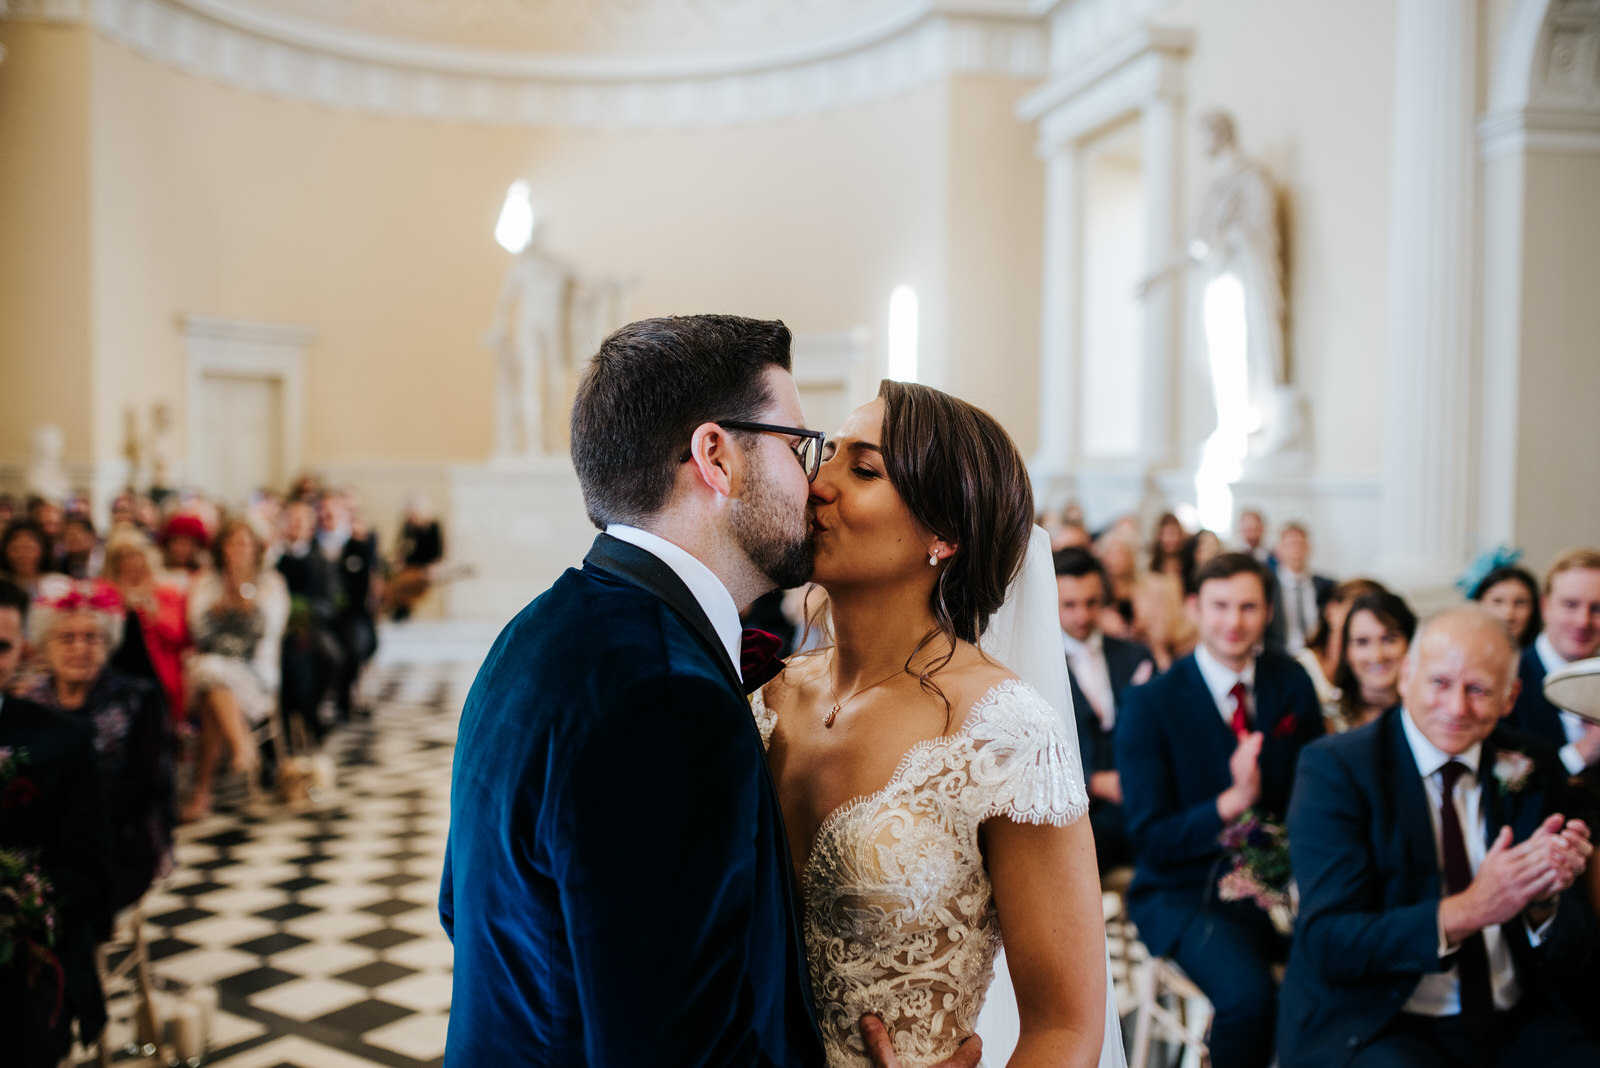 Bride and groom share their first kiss during ceremony at Syon House as guests look from back